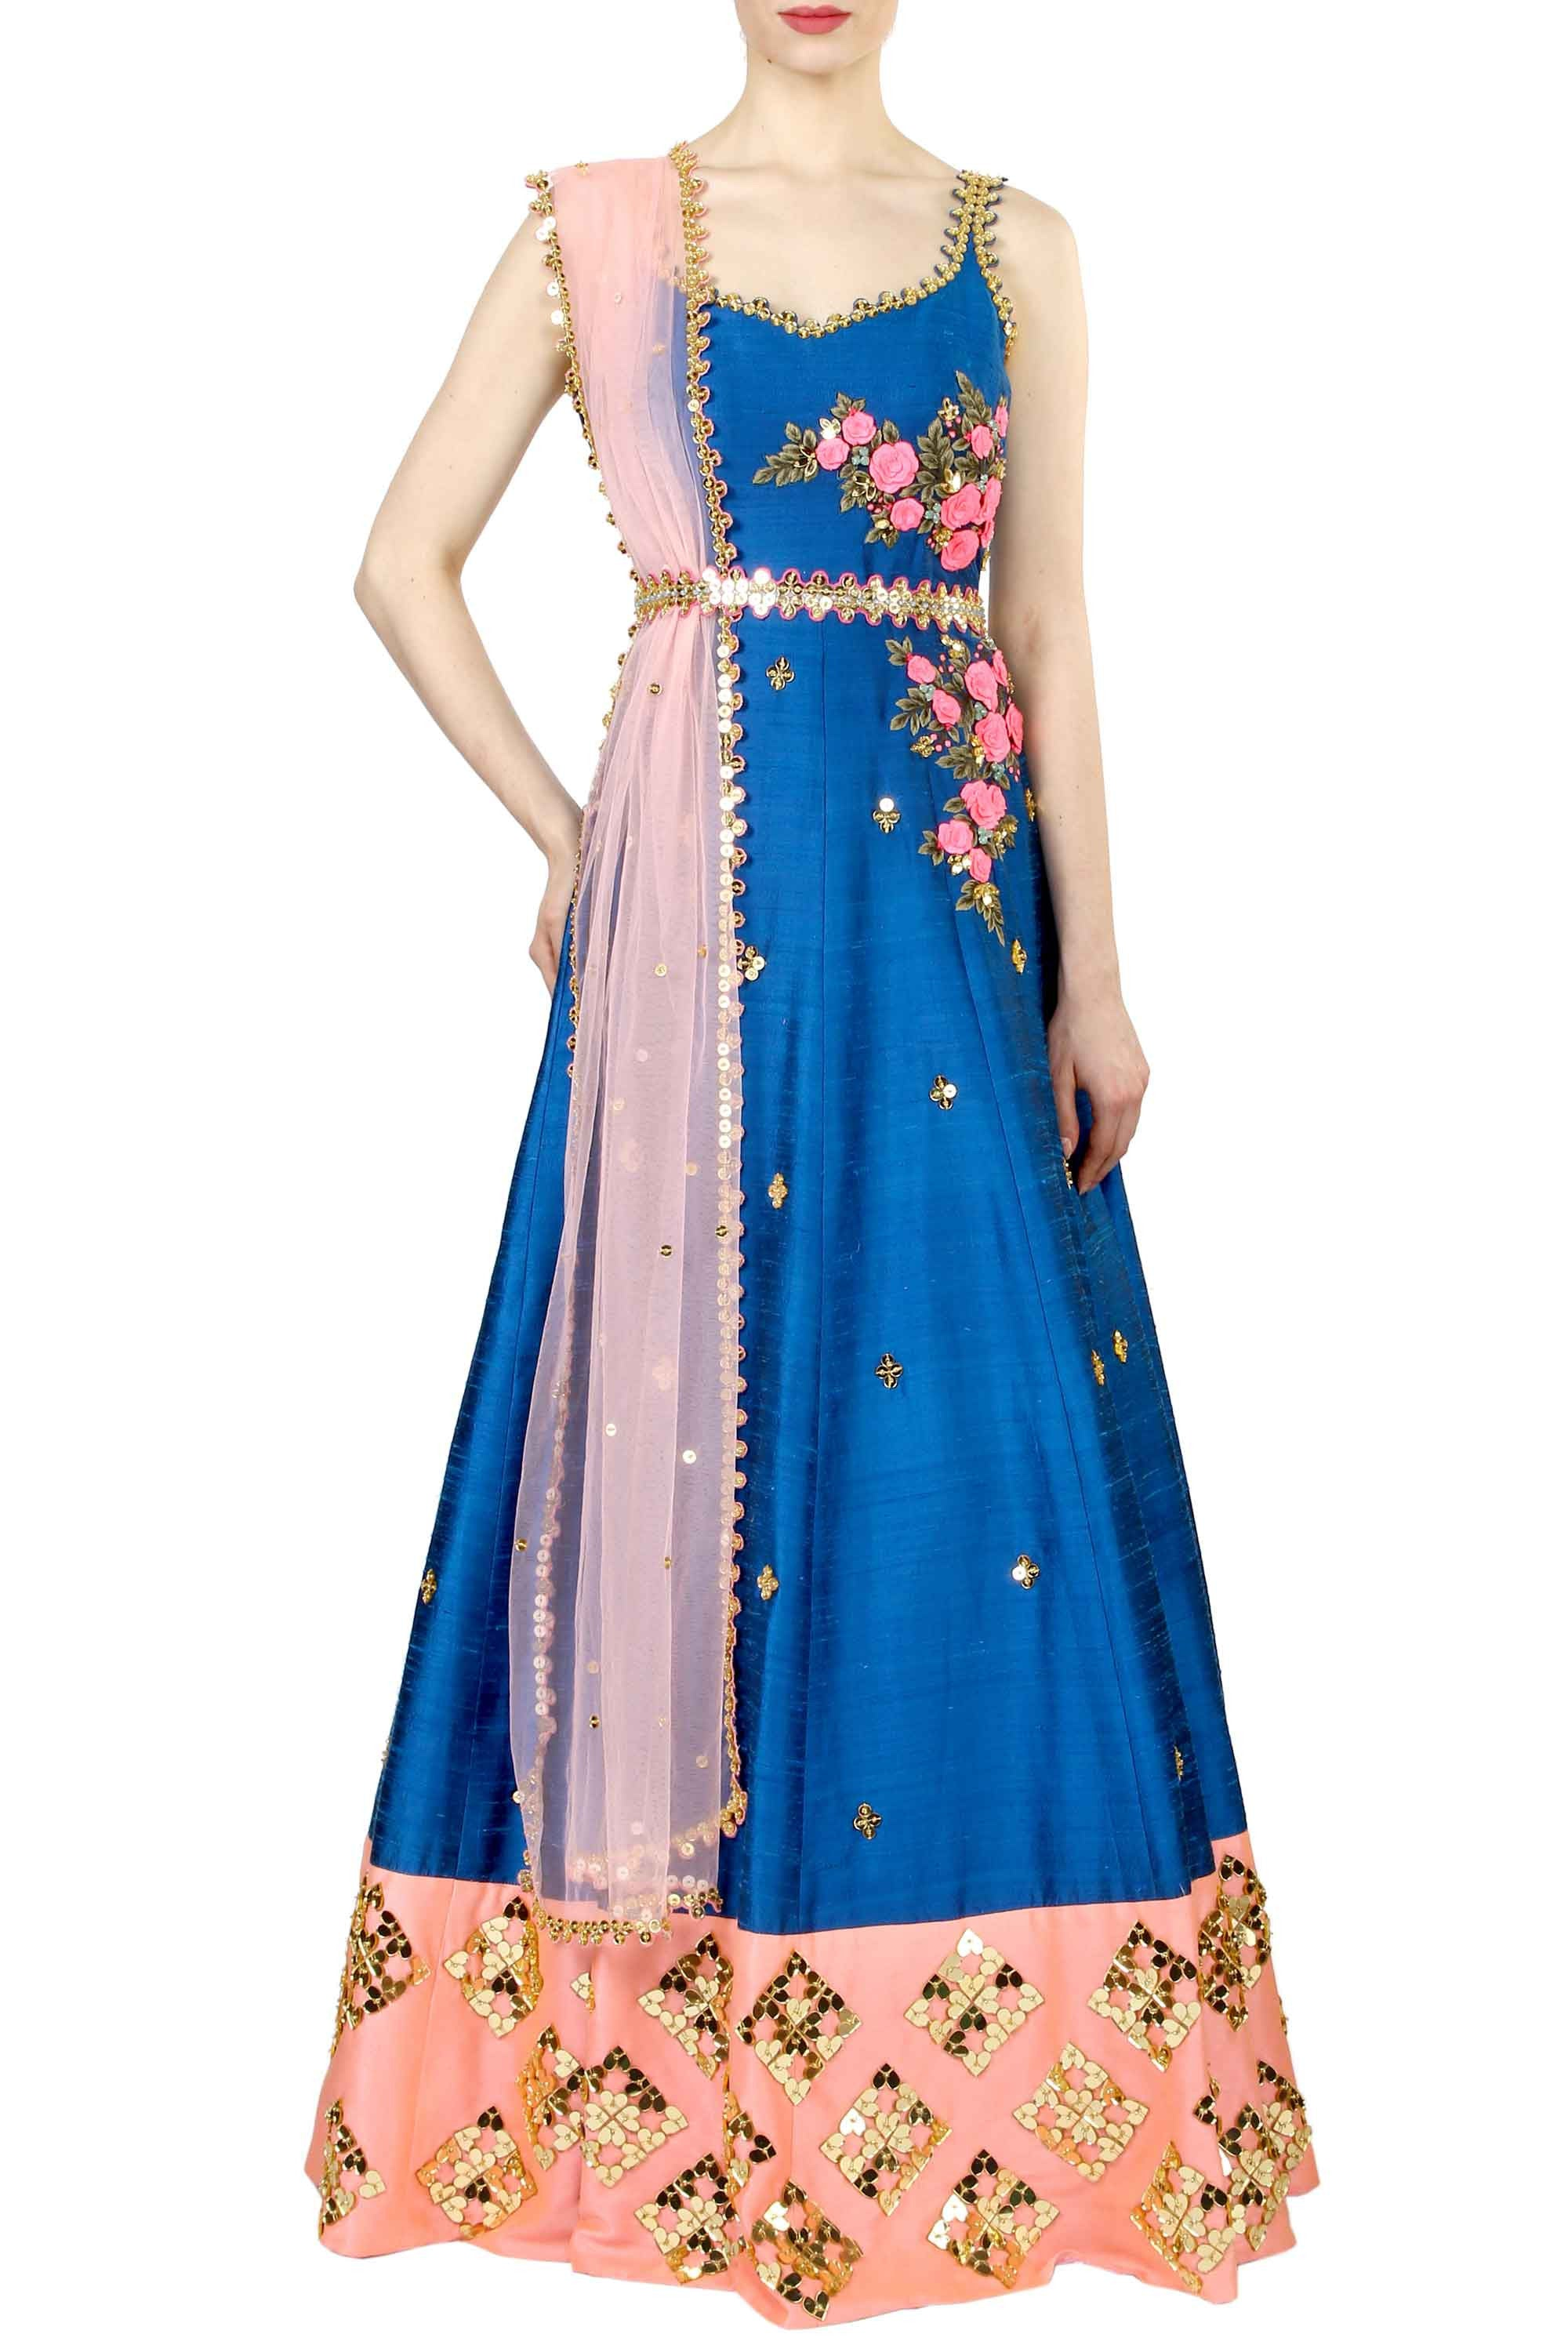 Mykonos Blue Anarkali Gown Full